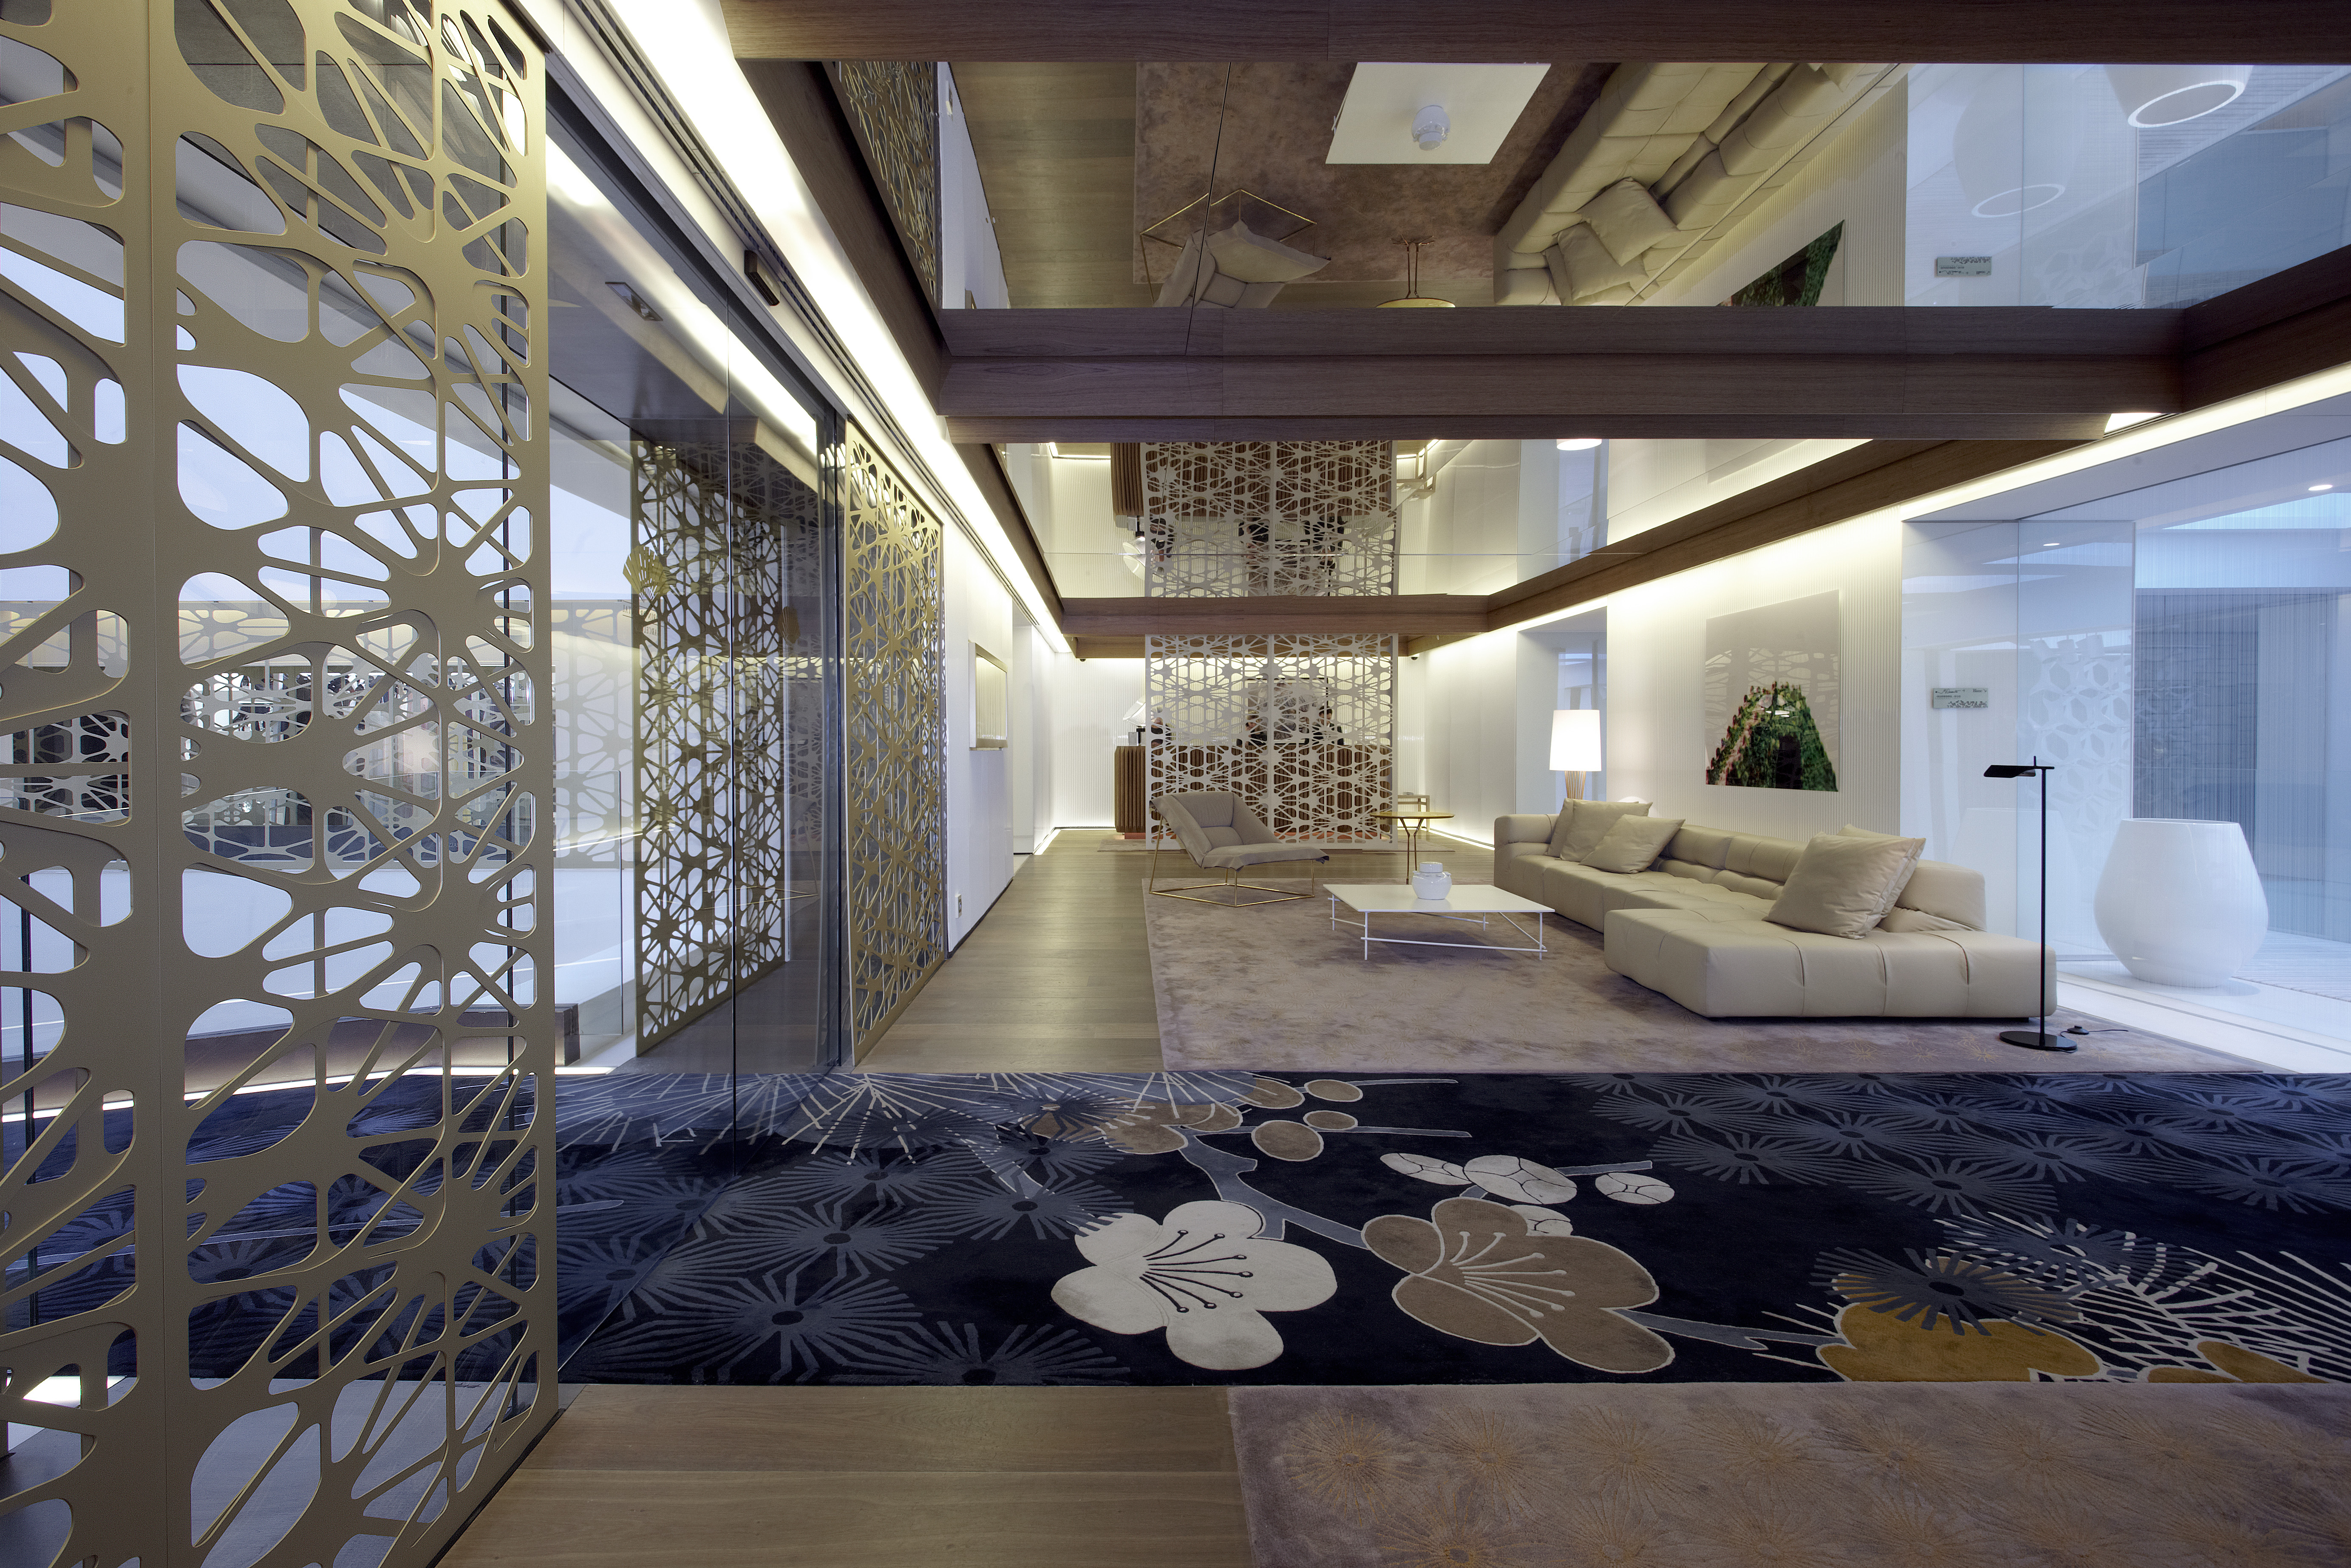 Photograph of Mandarin Oriental Hotel, Barcelona, Spain. Designed by Patricia Urquiola. Designed in 2010. (2)